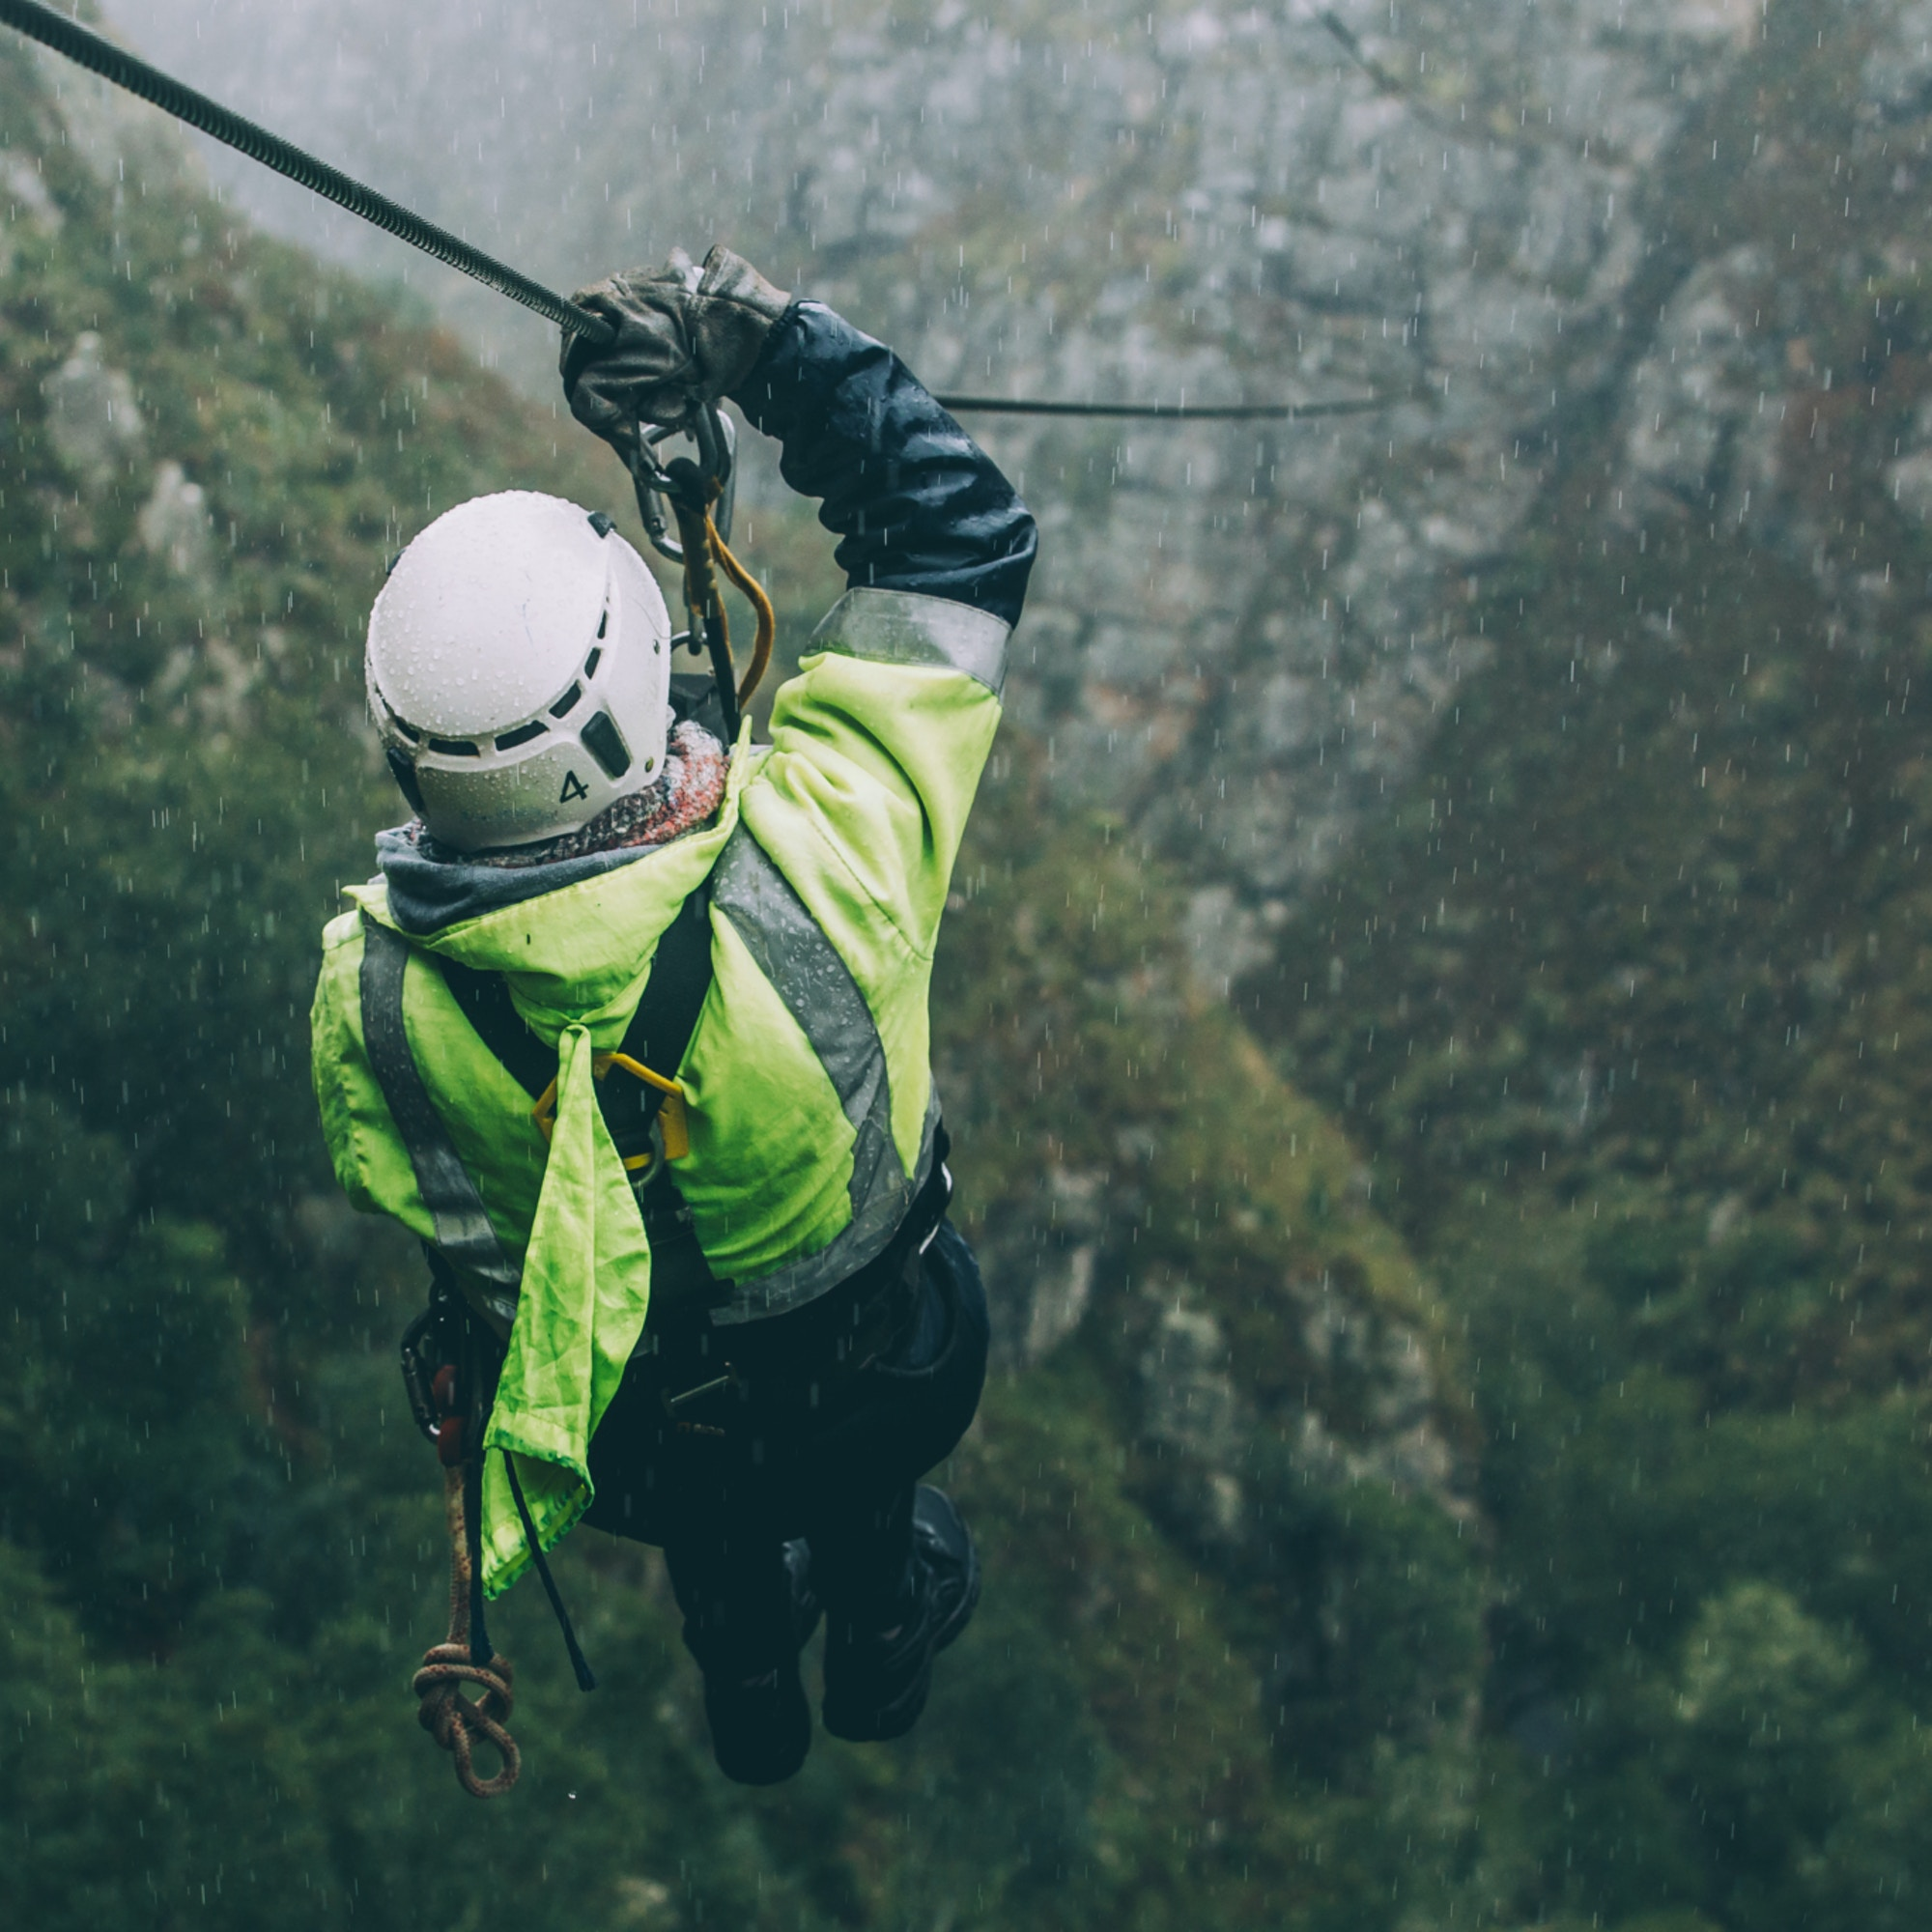 Ziplining adventure at Cape Canopy Tours in Elgin Valley discoverctwc